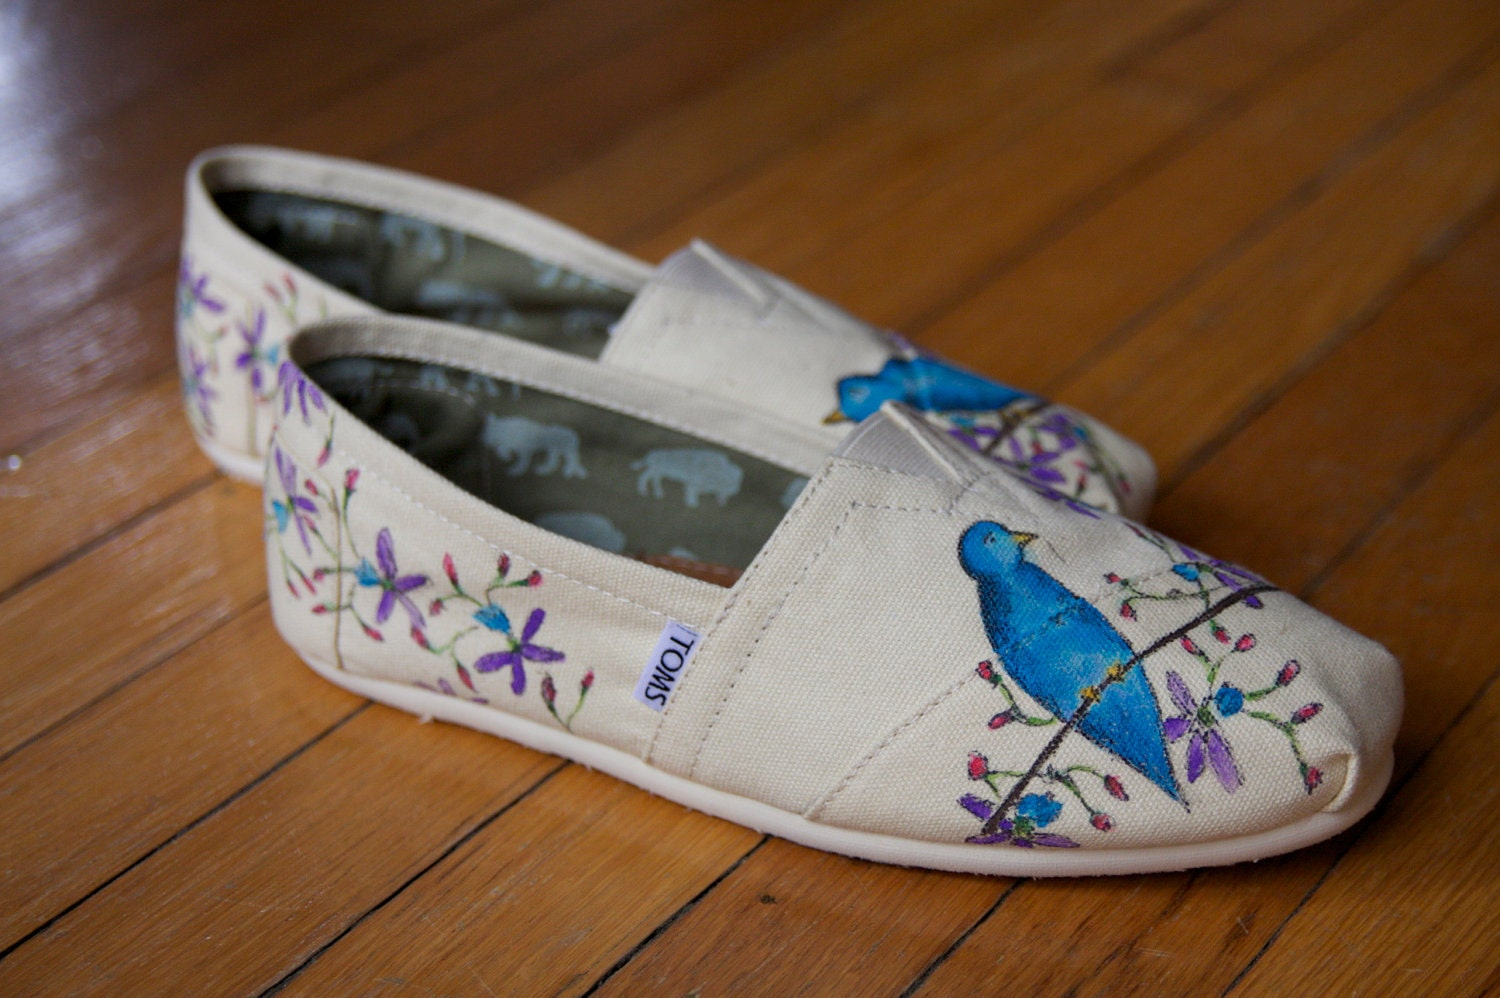 Custom TOMS Shoes - Blue Birds in the Flowers